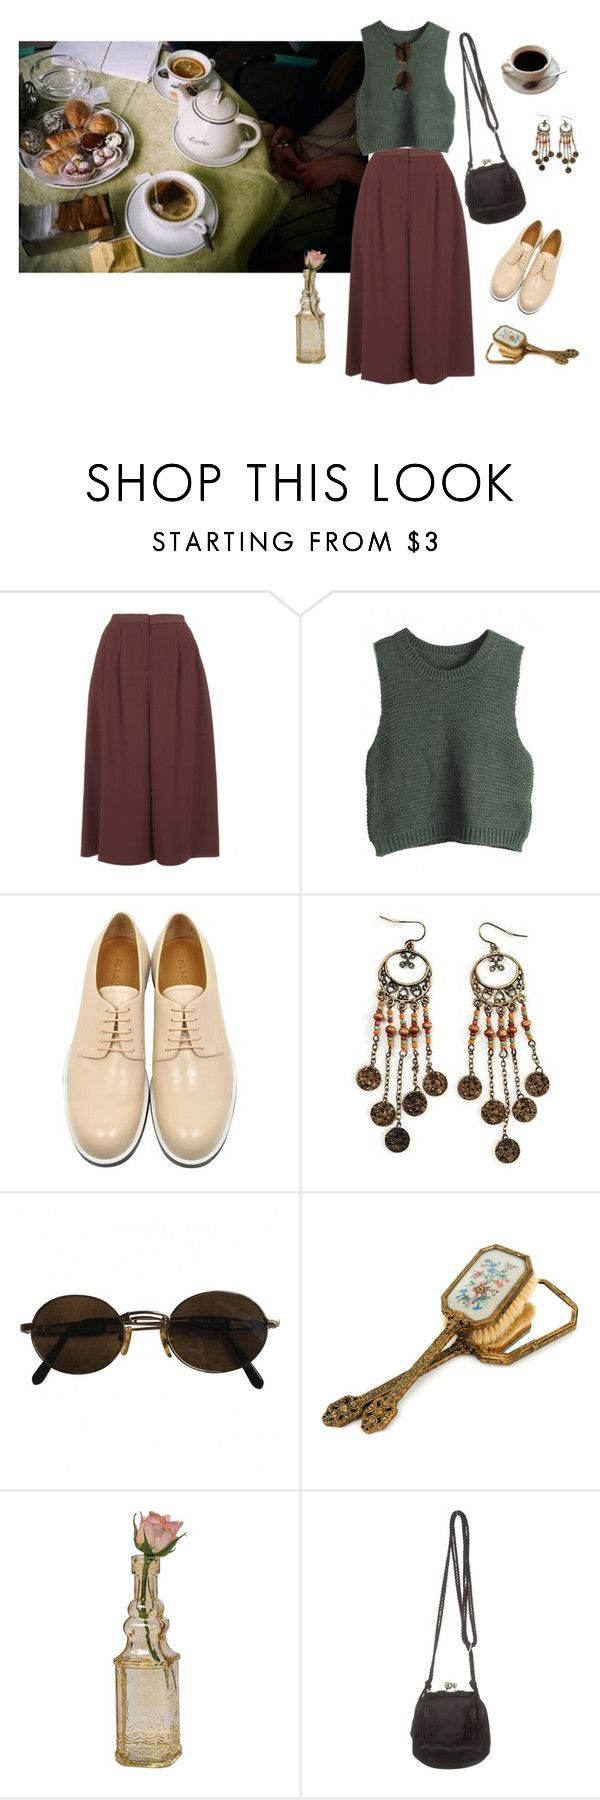 """Té para 3"" by ballrooms-of-mars ❤ liked on Polyvore featuring Topshop, WithChic, Jil Sander, Moschino, Cultural Intrigue and Judith Leiber"